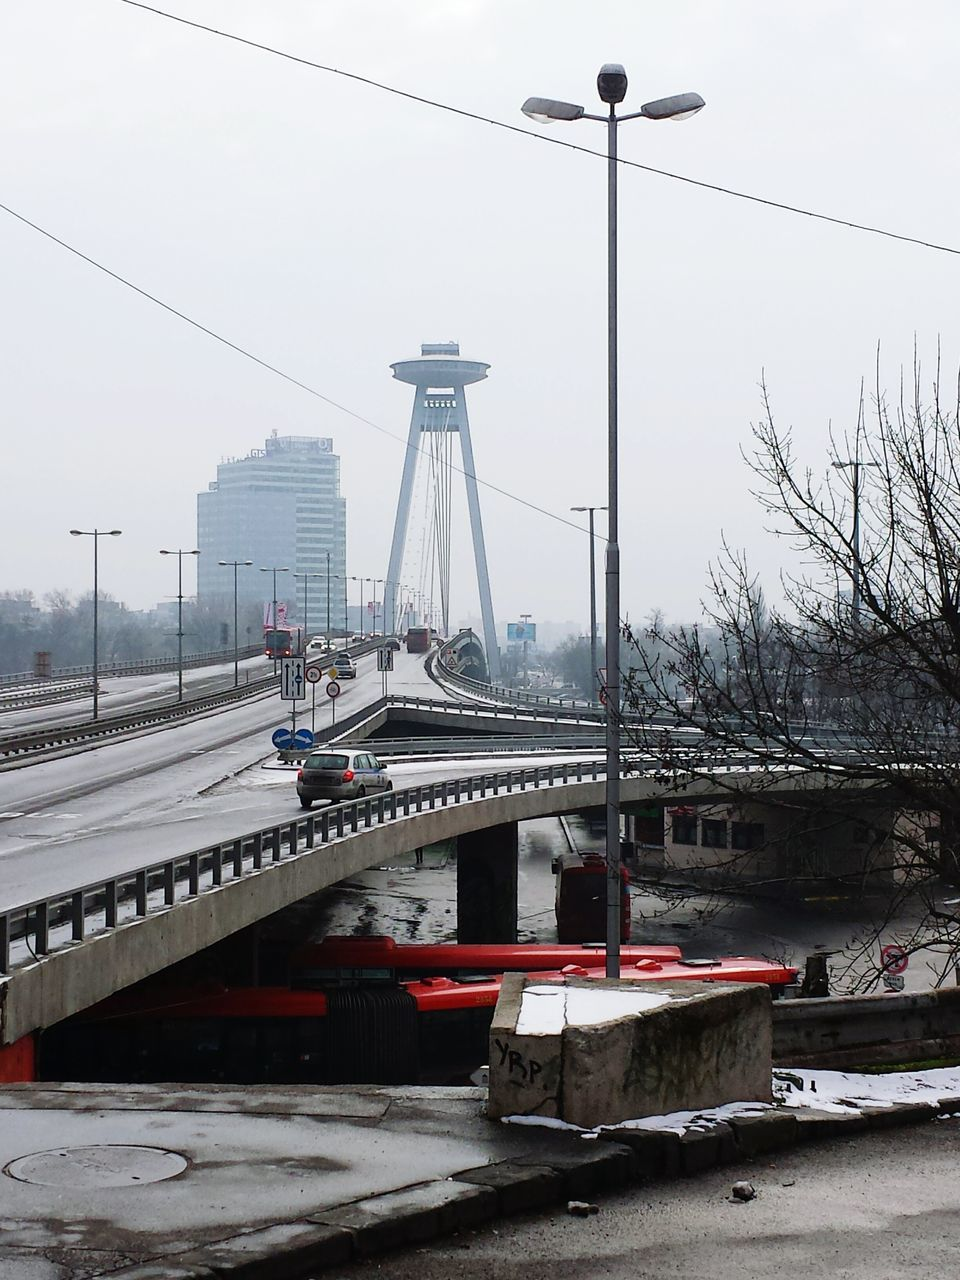 transportation, connection, bridge - man made structure, mode of transport, architecture, built structure, land vehicle, car, outdoors, cable, sky, day, street light, city, suspension bridge, building exterior, bridge, no people, road, tree, electricity pylon, snow, winter, clear sky, nature